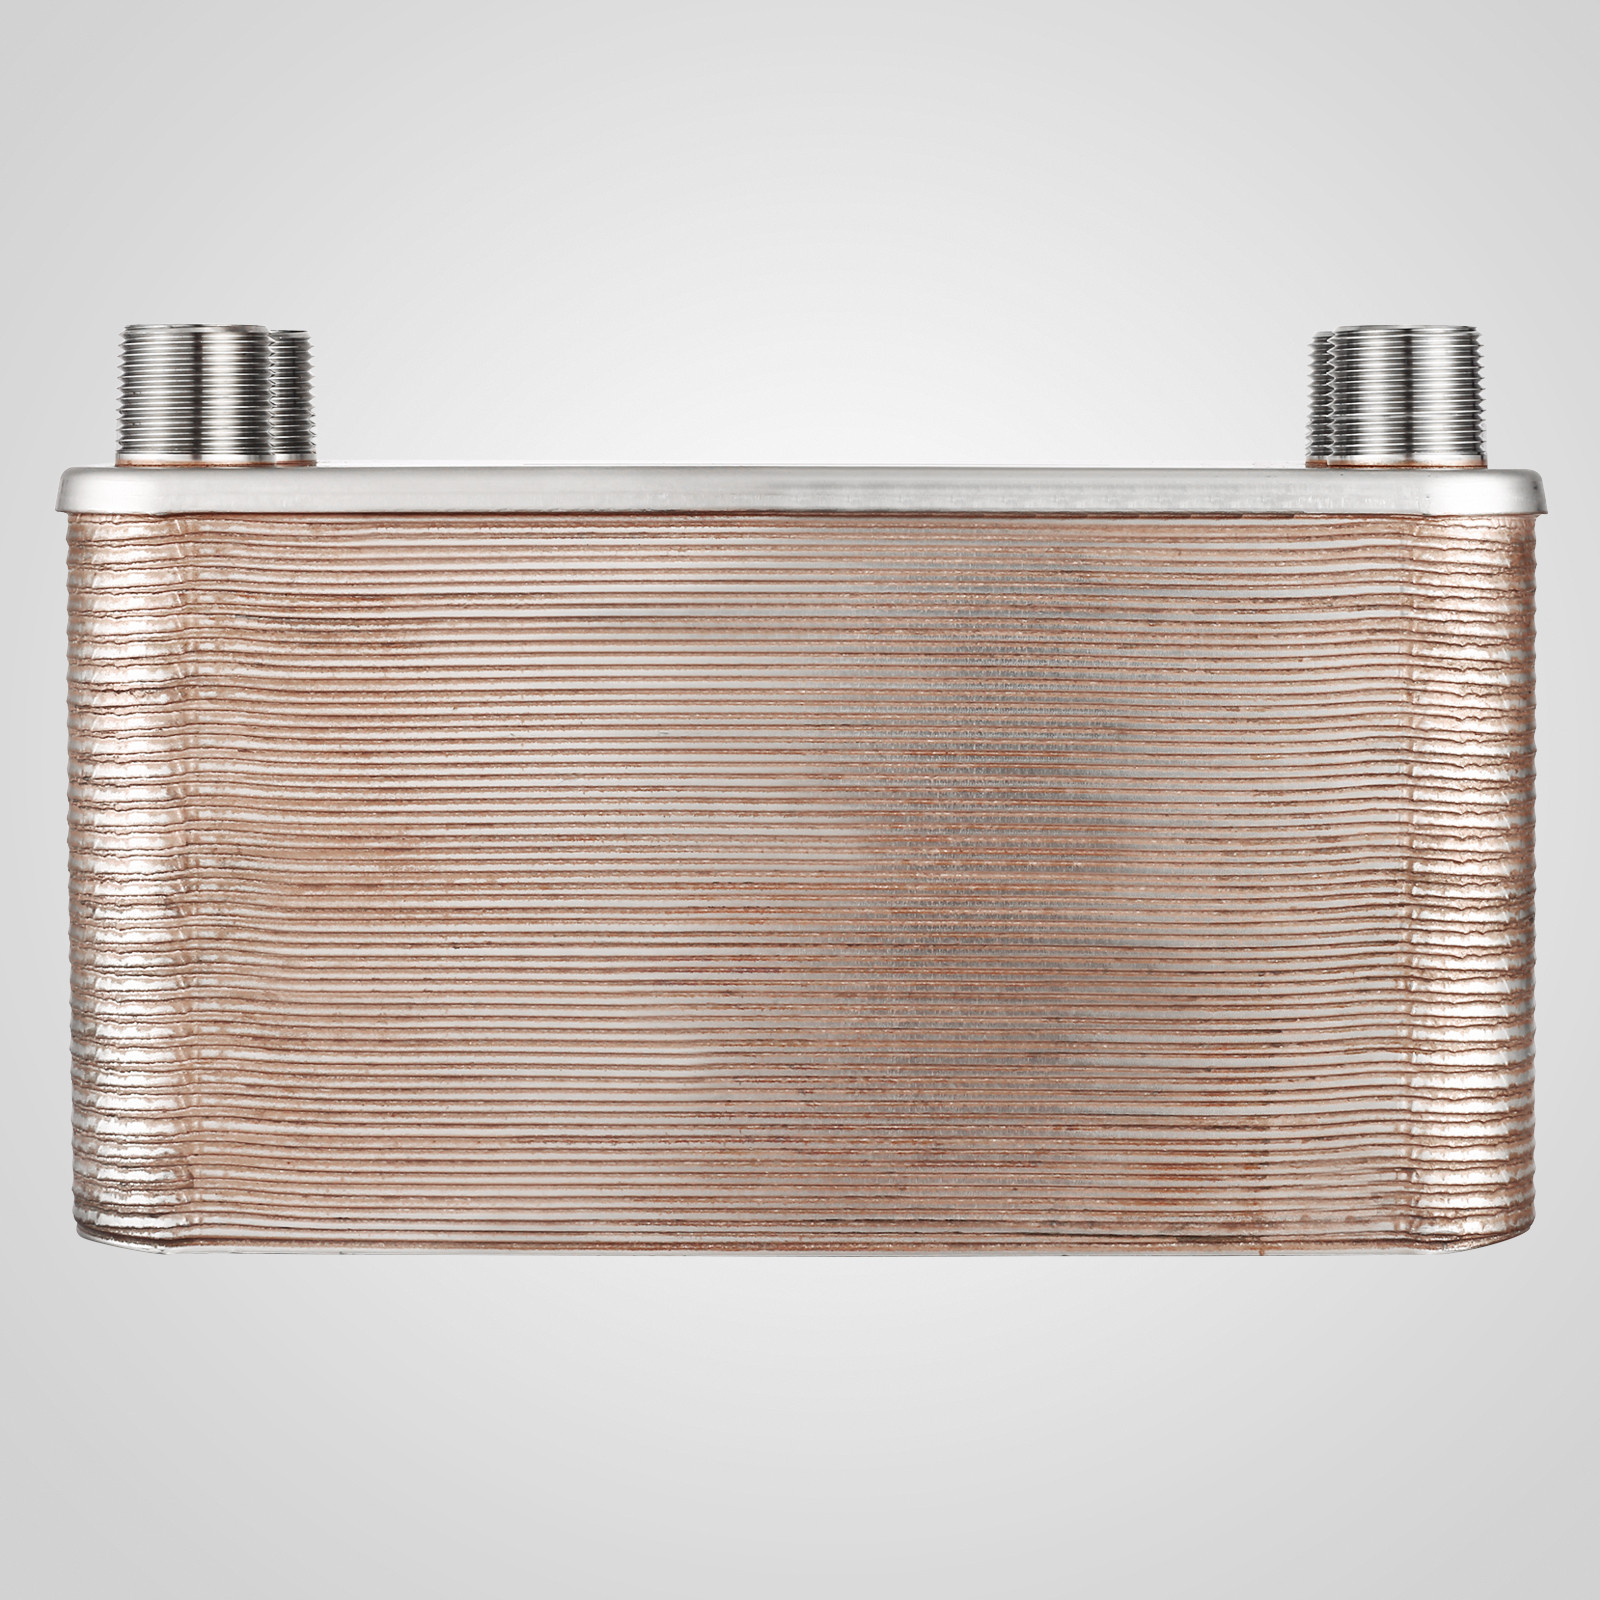 5x12-039-039-Brazed-20-30-50-80-100-Plate-Heat-Exchanger-Outdoor-Wood-Furnace-1-039-039-MPT